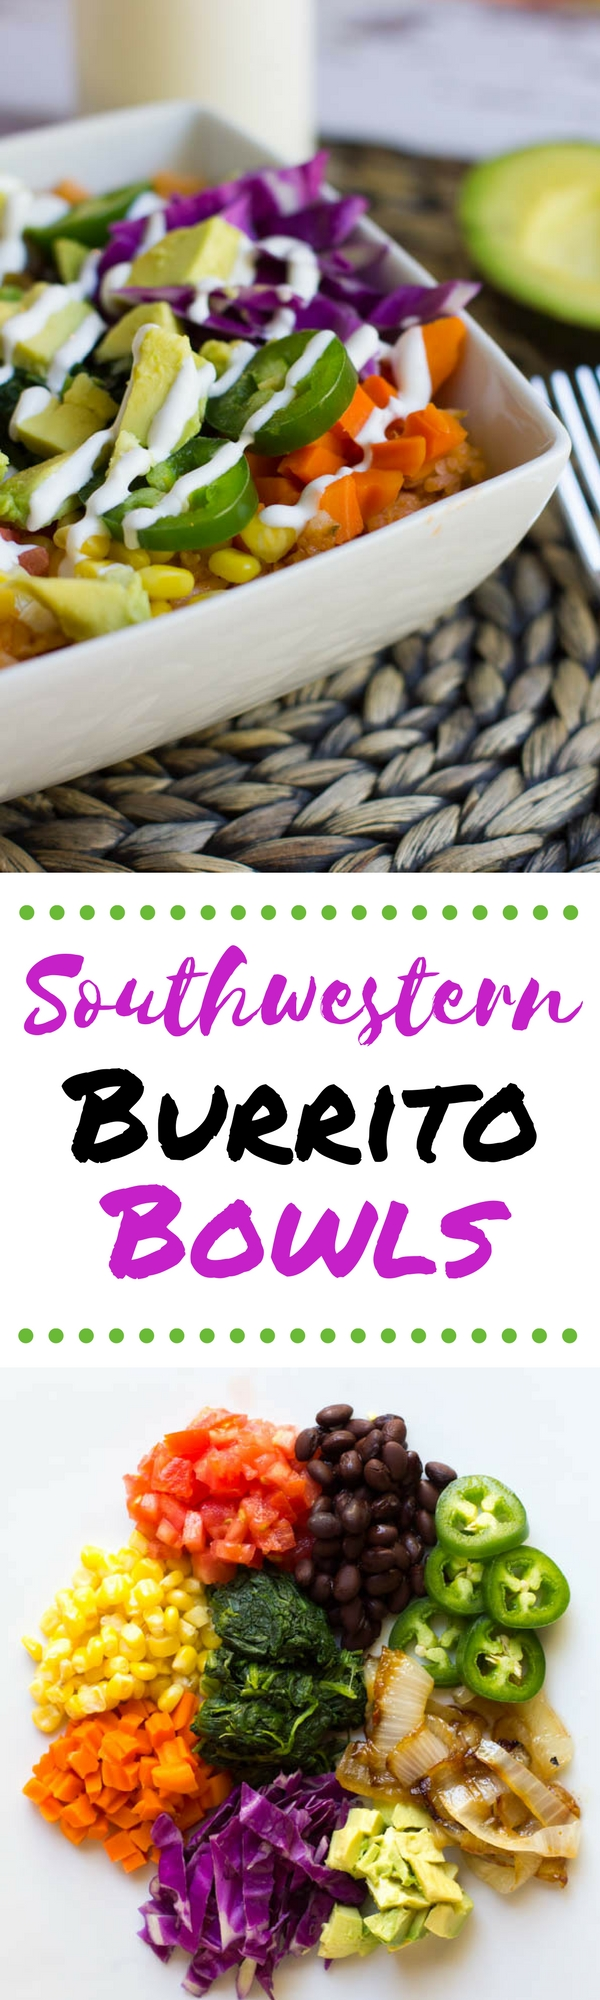 Everything you love about a burrito in a bowl. Change the toppings as you wish to create your own experience!